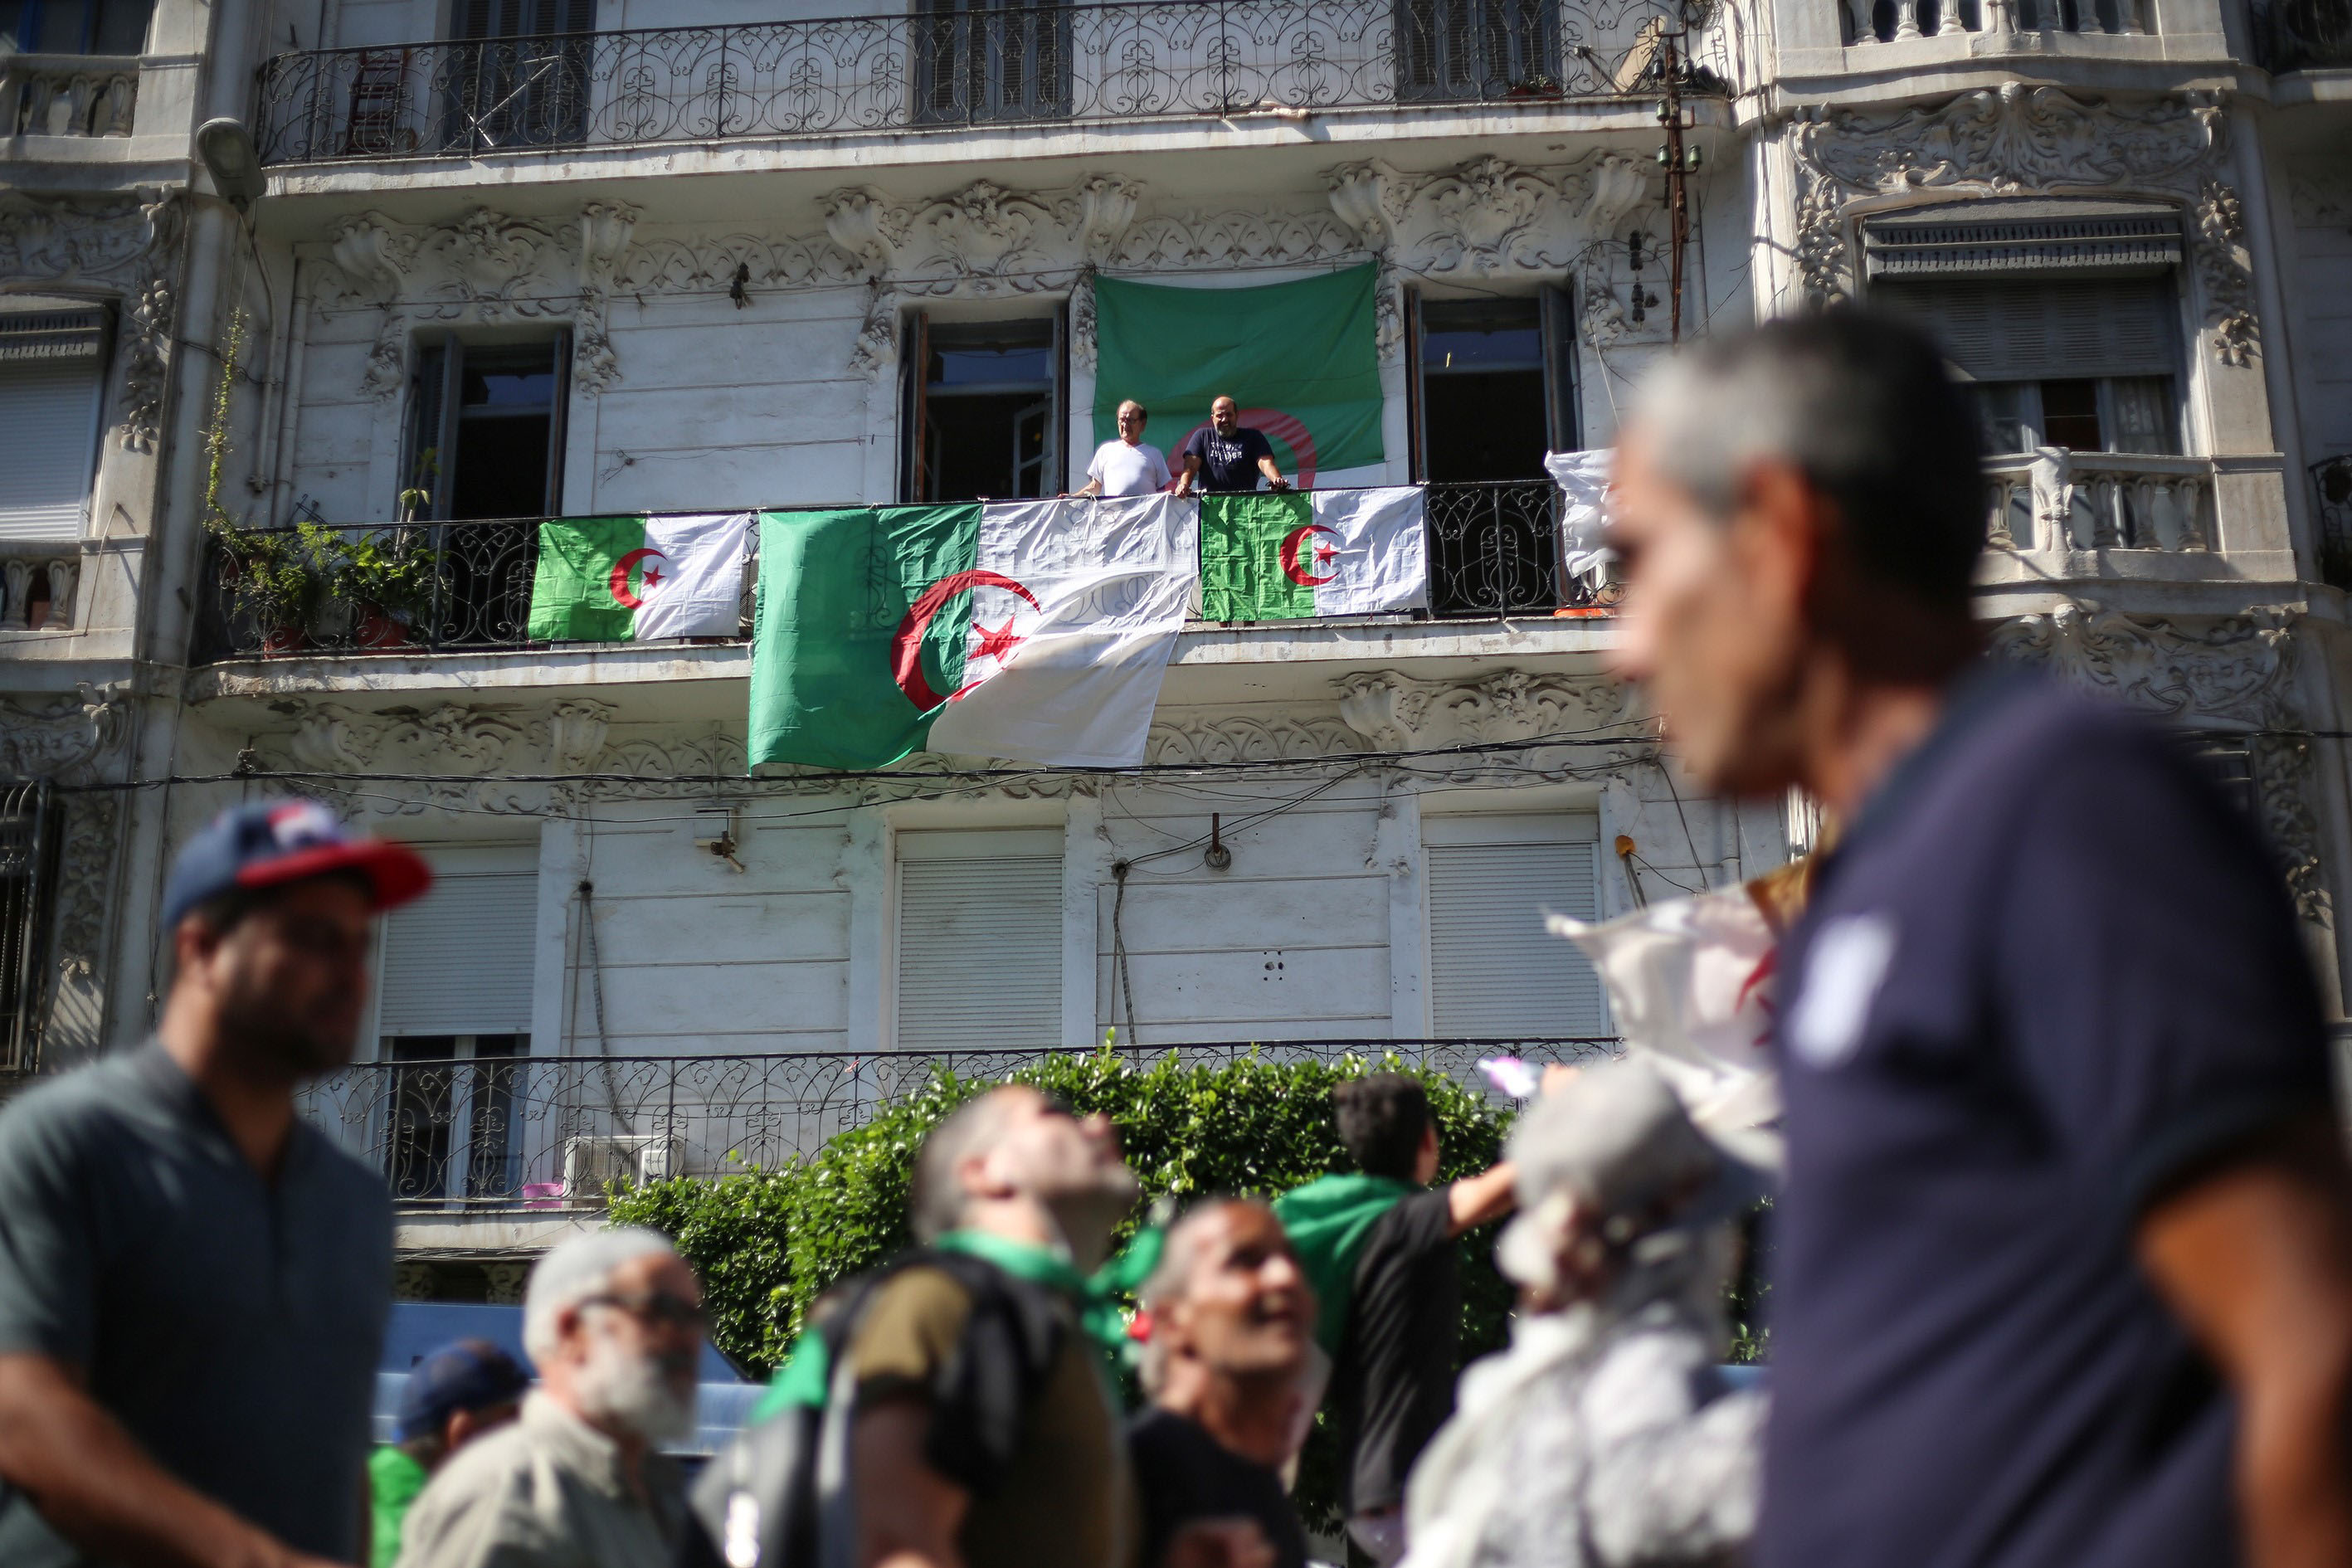 4 October 2019: Algerians demonstrating in Algiers to demand that regime officials, who continue to work despite the resignation of former president Abdelaziz Bouteflika, step down. (Photograph by Mustafa Hassona/Anadolu Agency via Getty Images)